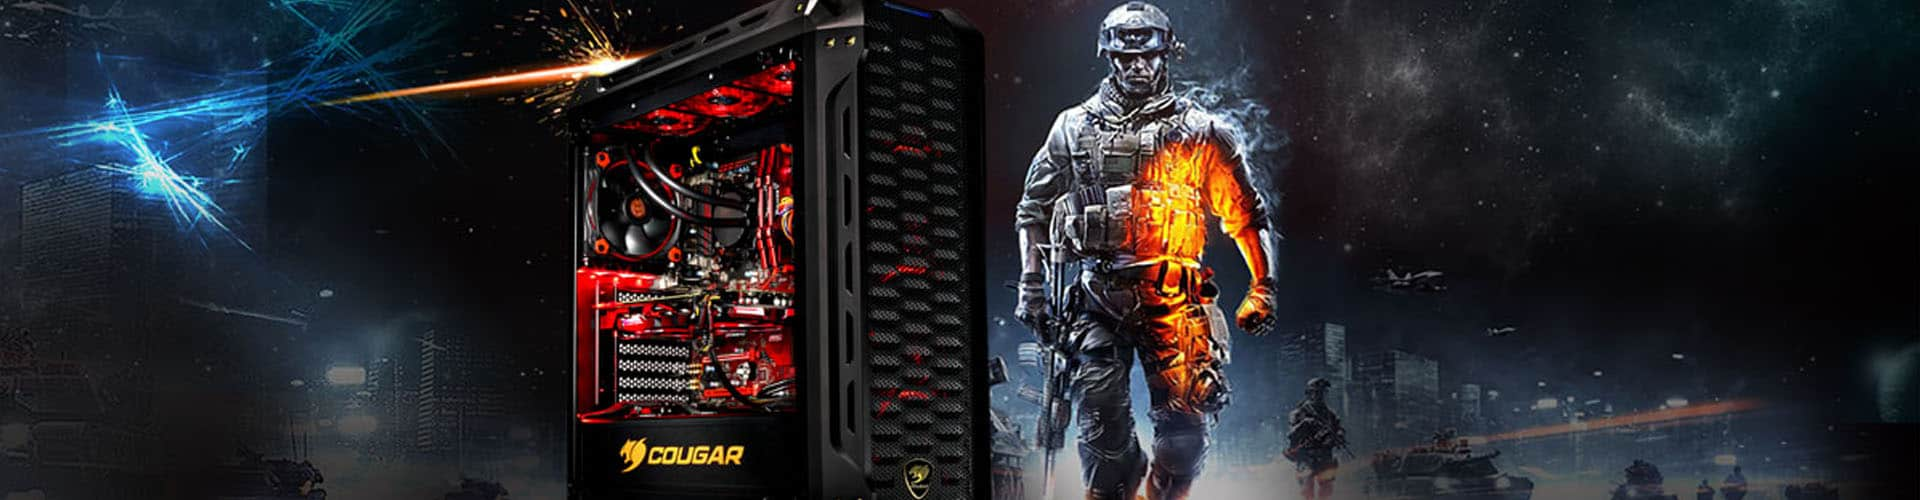 Best Prebuilt Gaming PC Under 1000 USD For 2019 – Buying Guide and Desktop Reviews